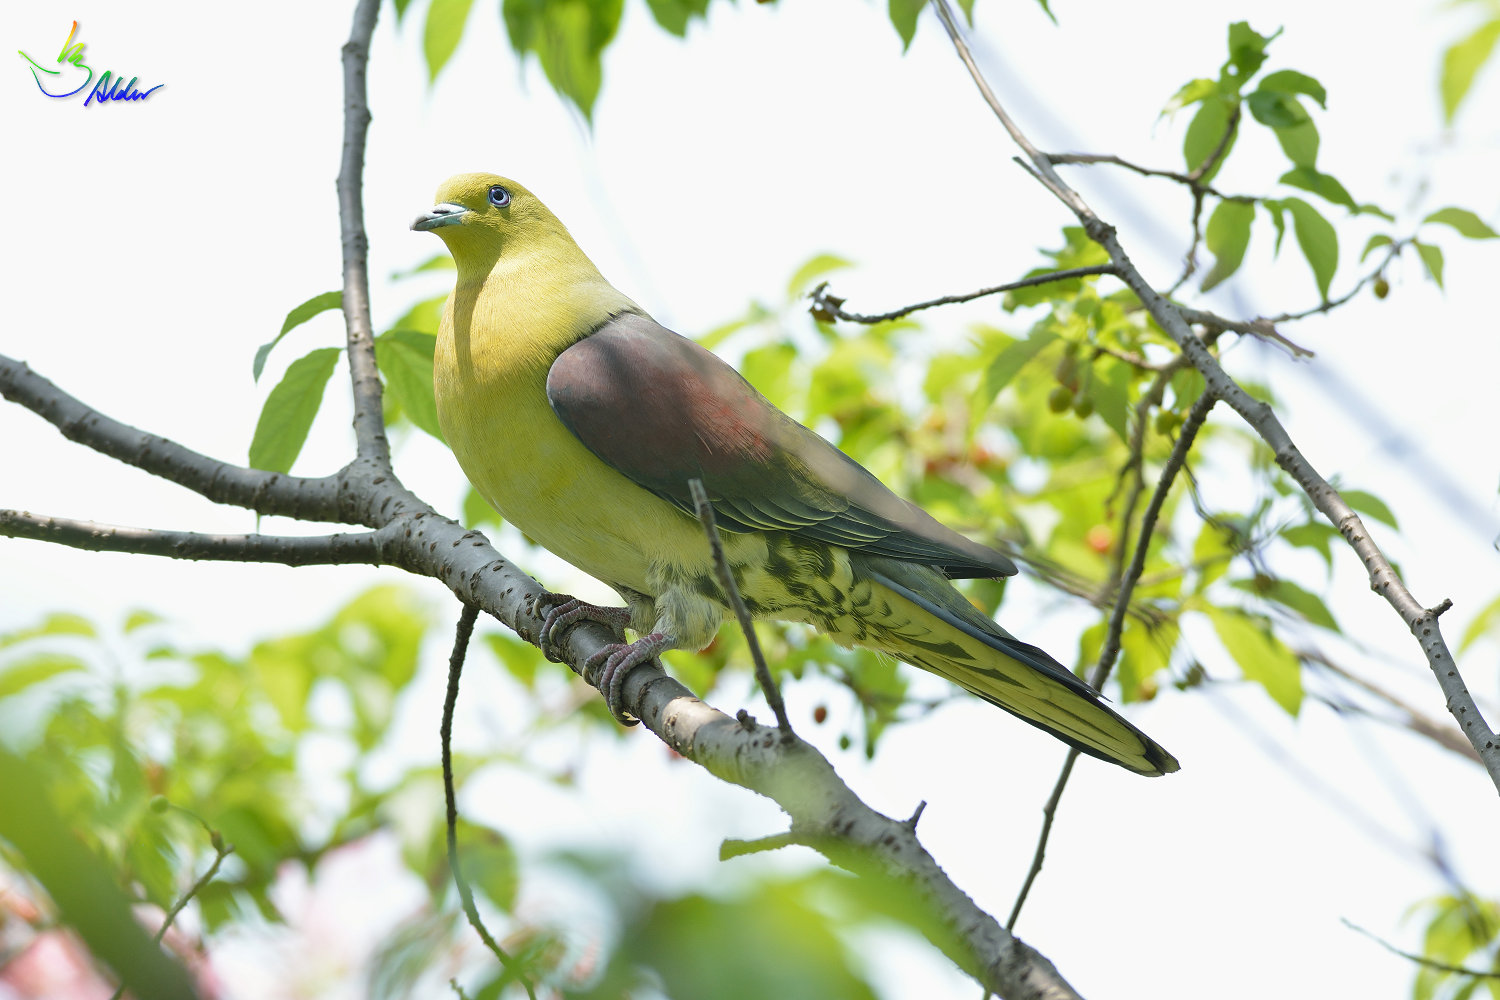 White-bellied_Green_Pigeon_5302